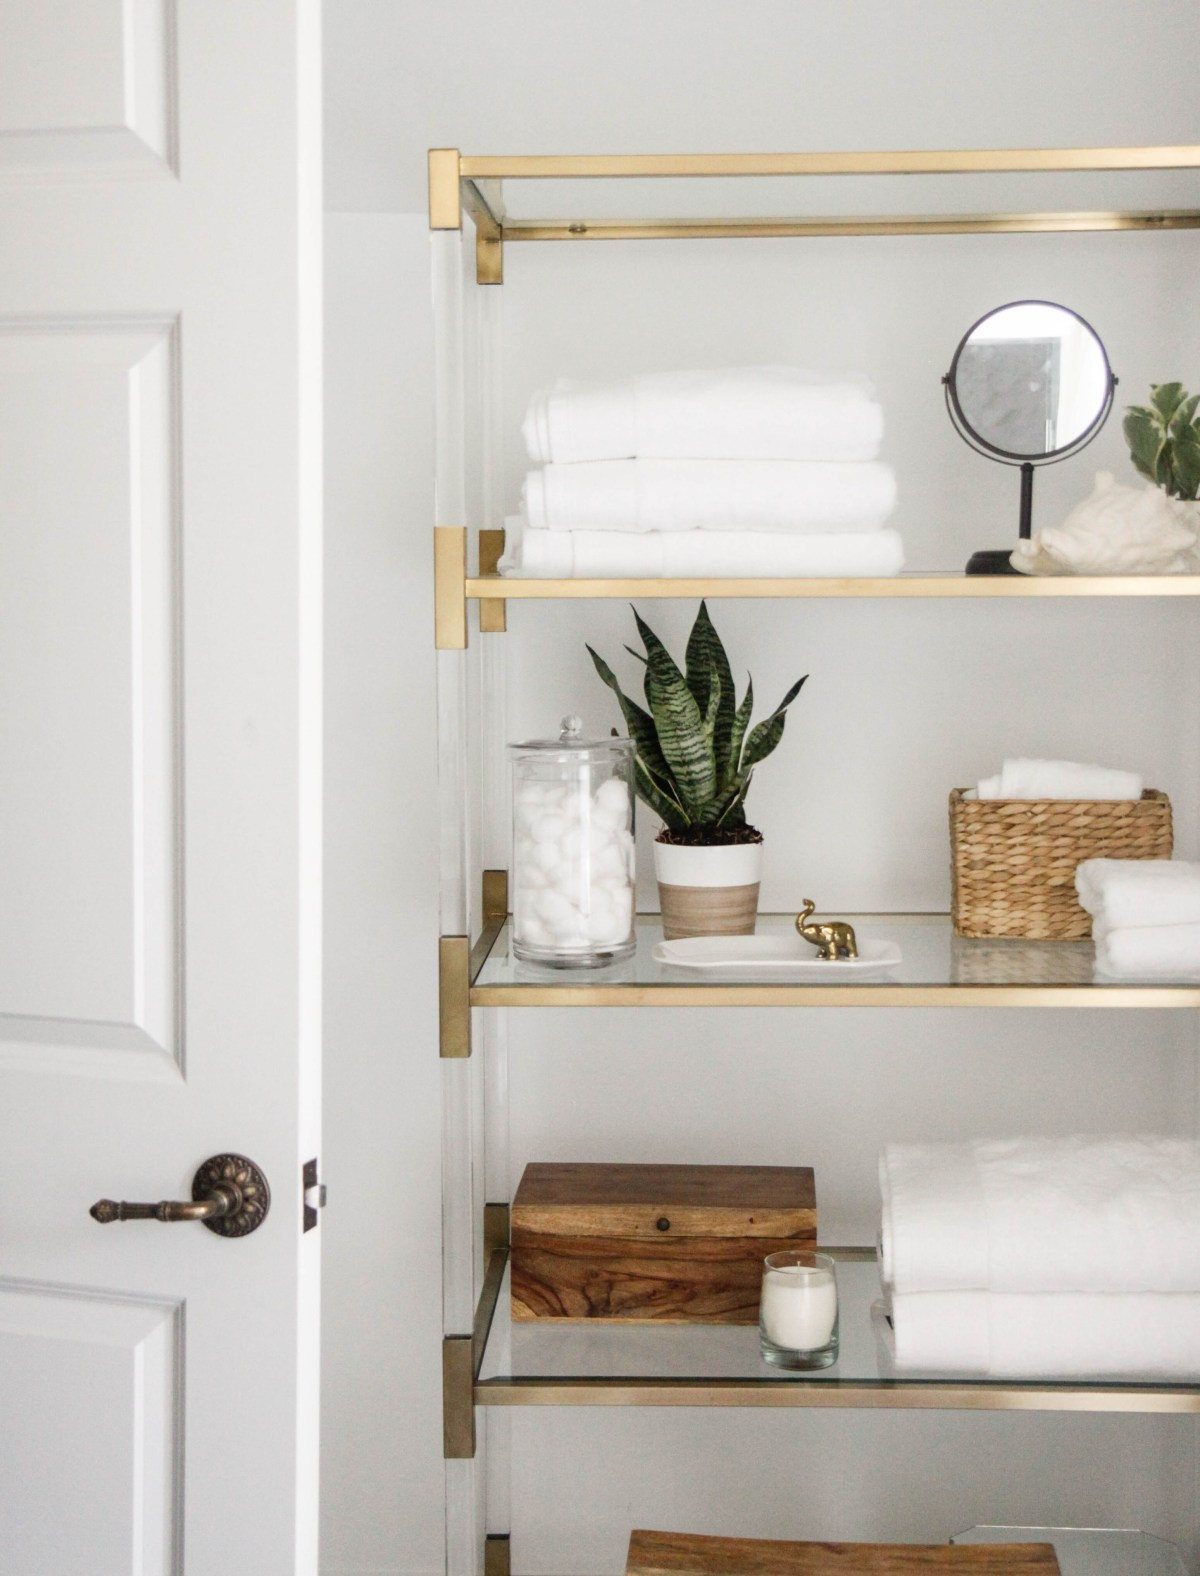 Oak bathroom accessories - Bathroom Accessory Roundup